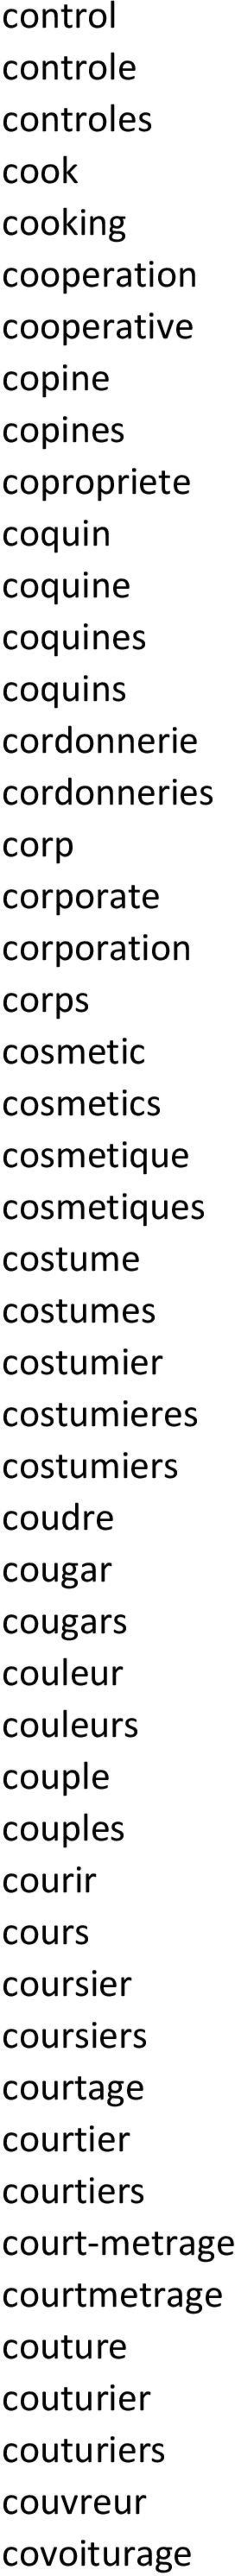 costumes costumier costumieres costumiers coudre cougar cougars couleur couleurs couple couples courir cours